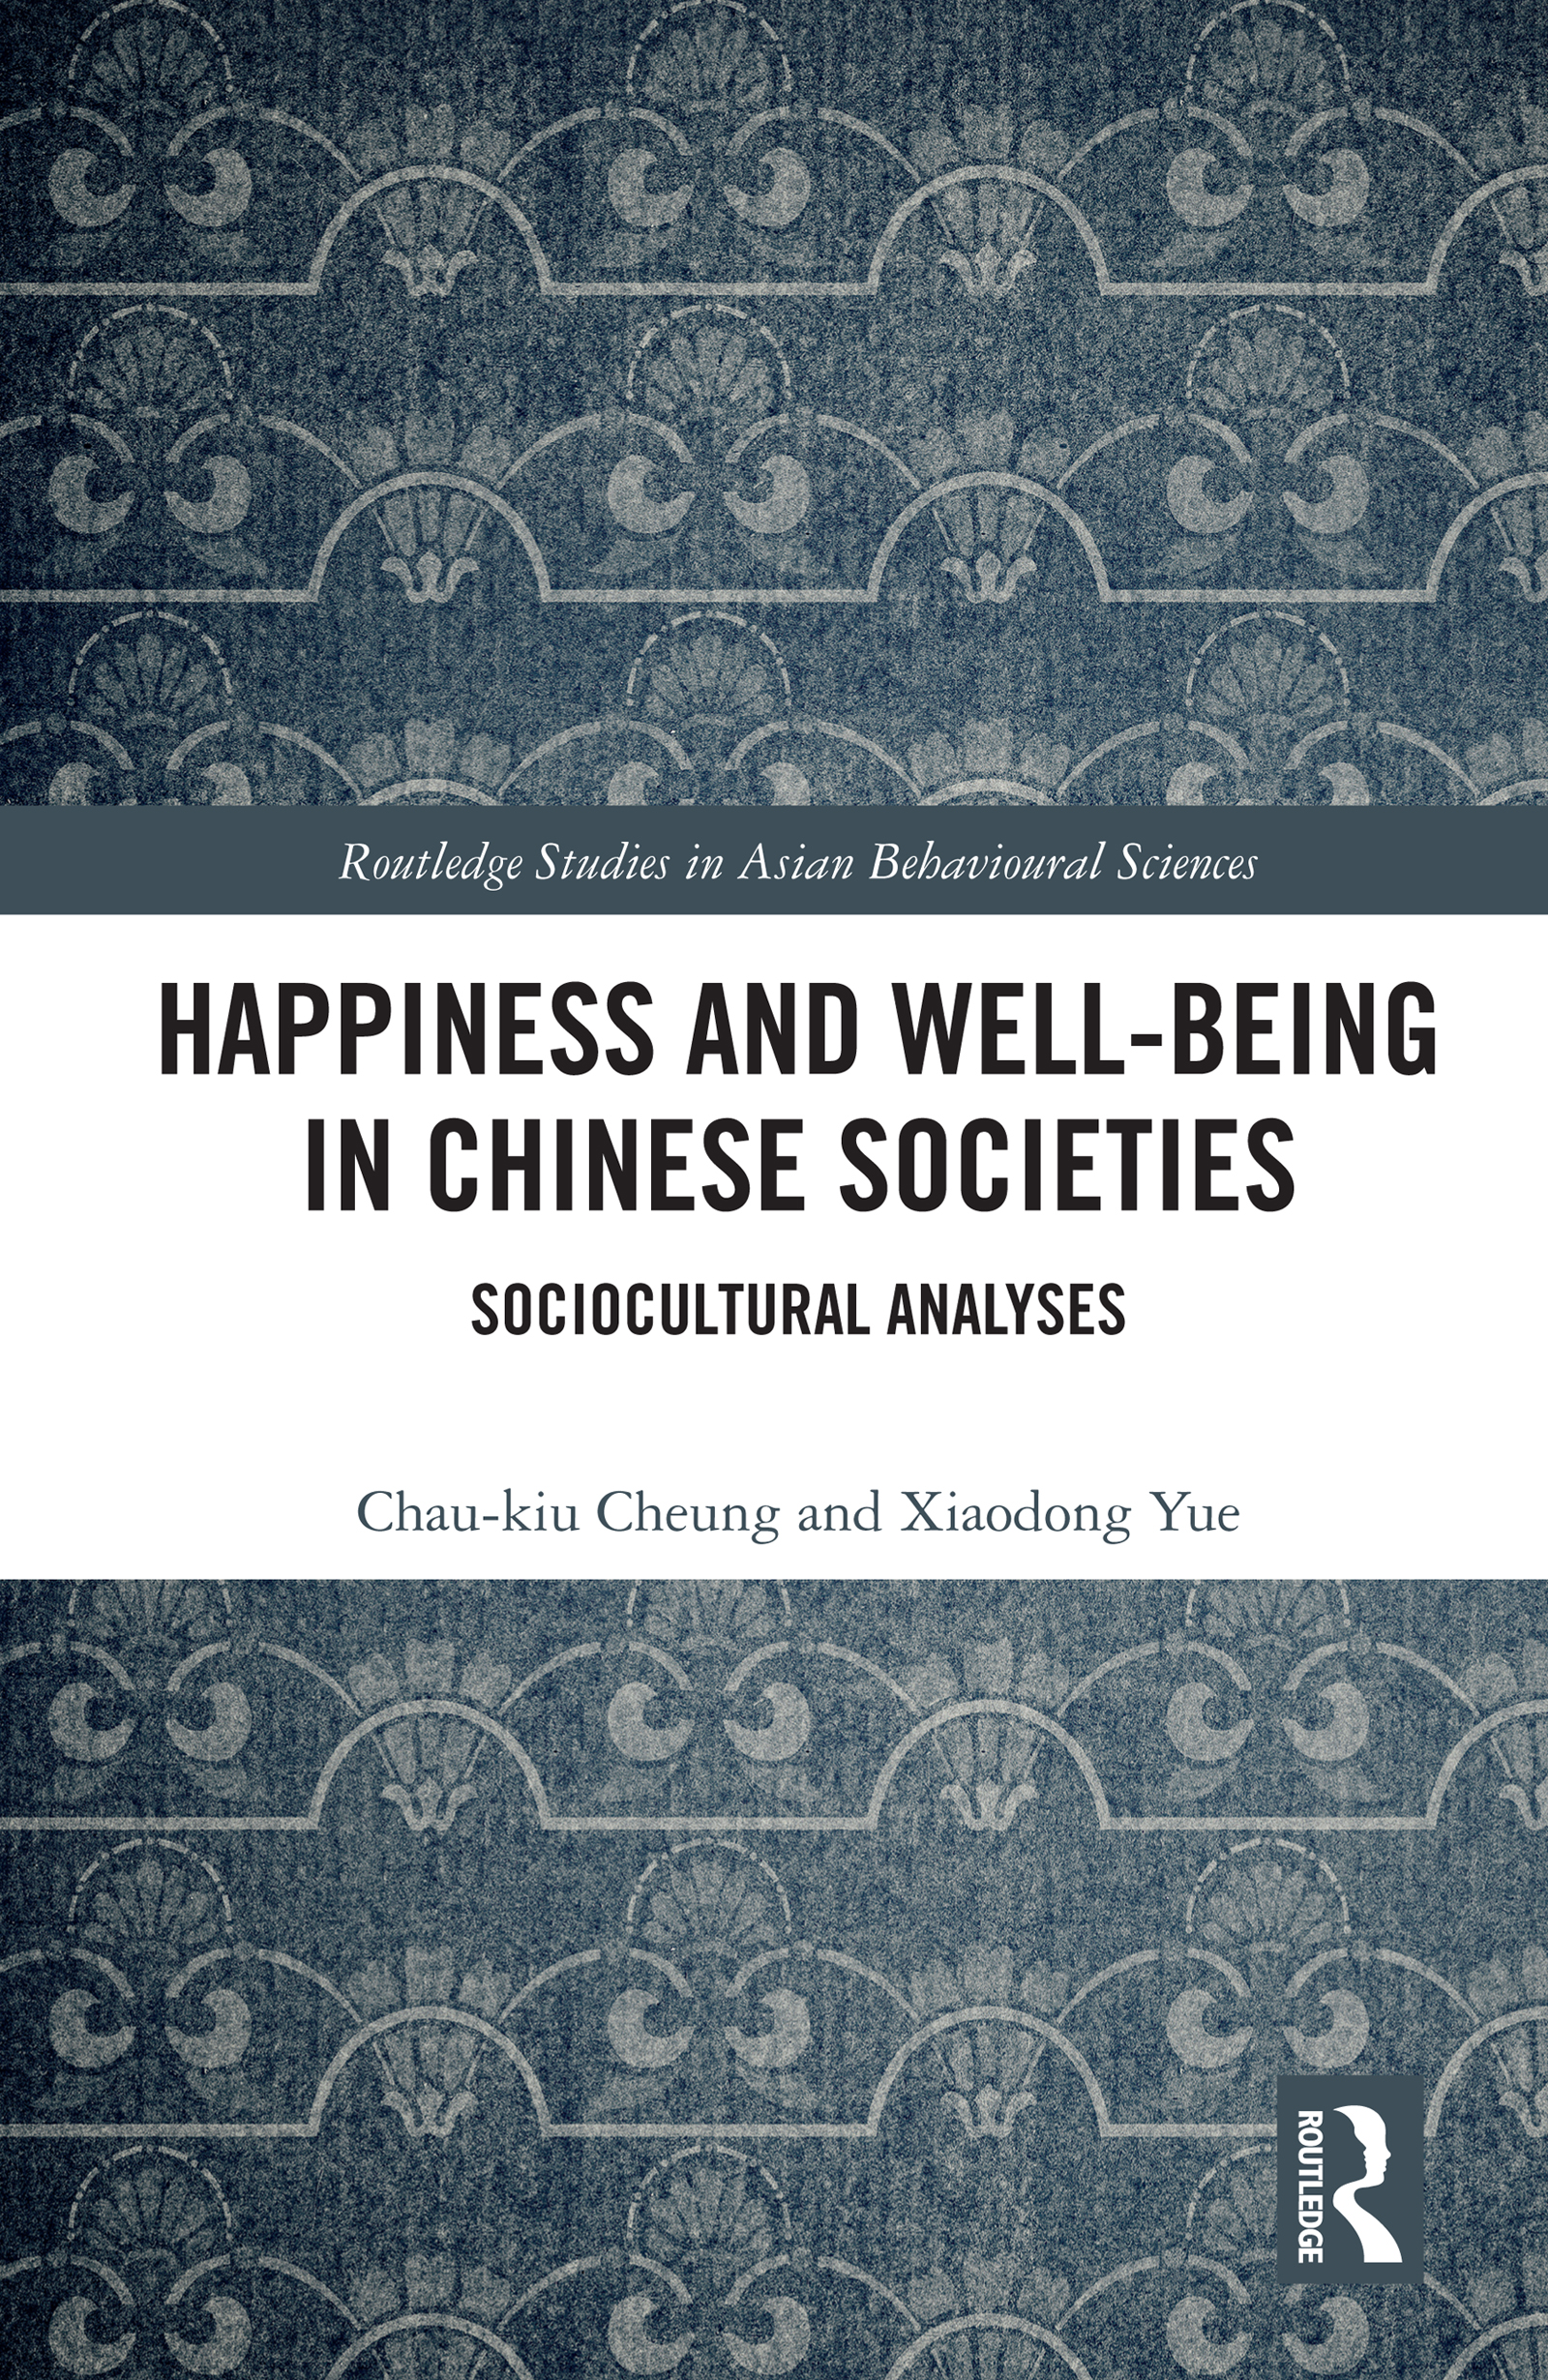 Effects of personal dispositions on well-being